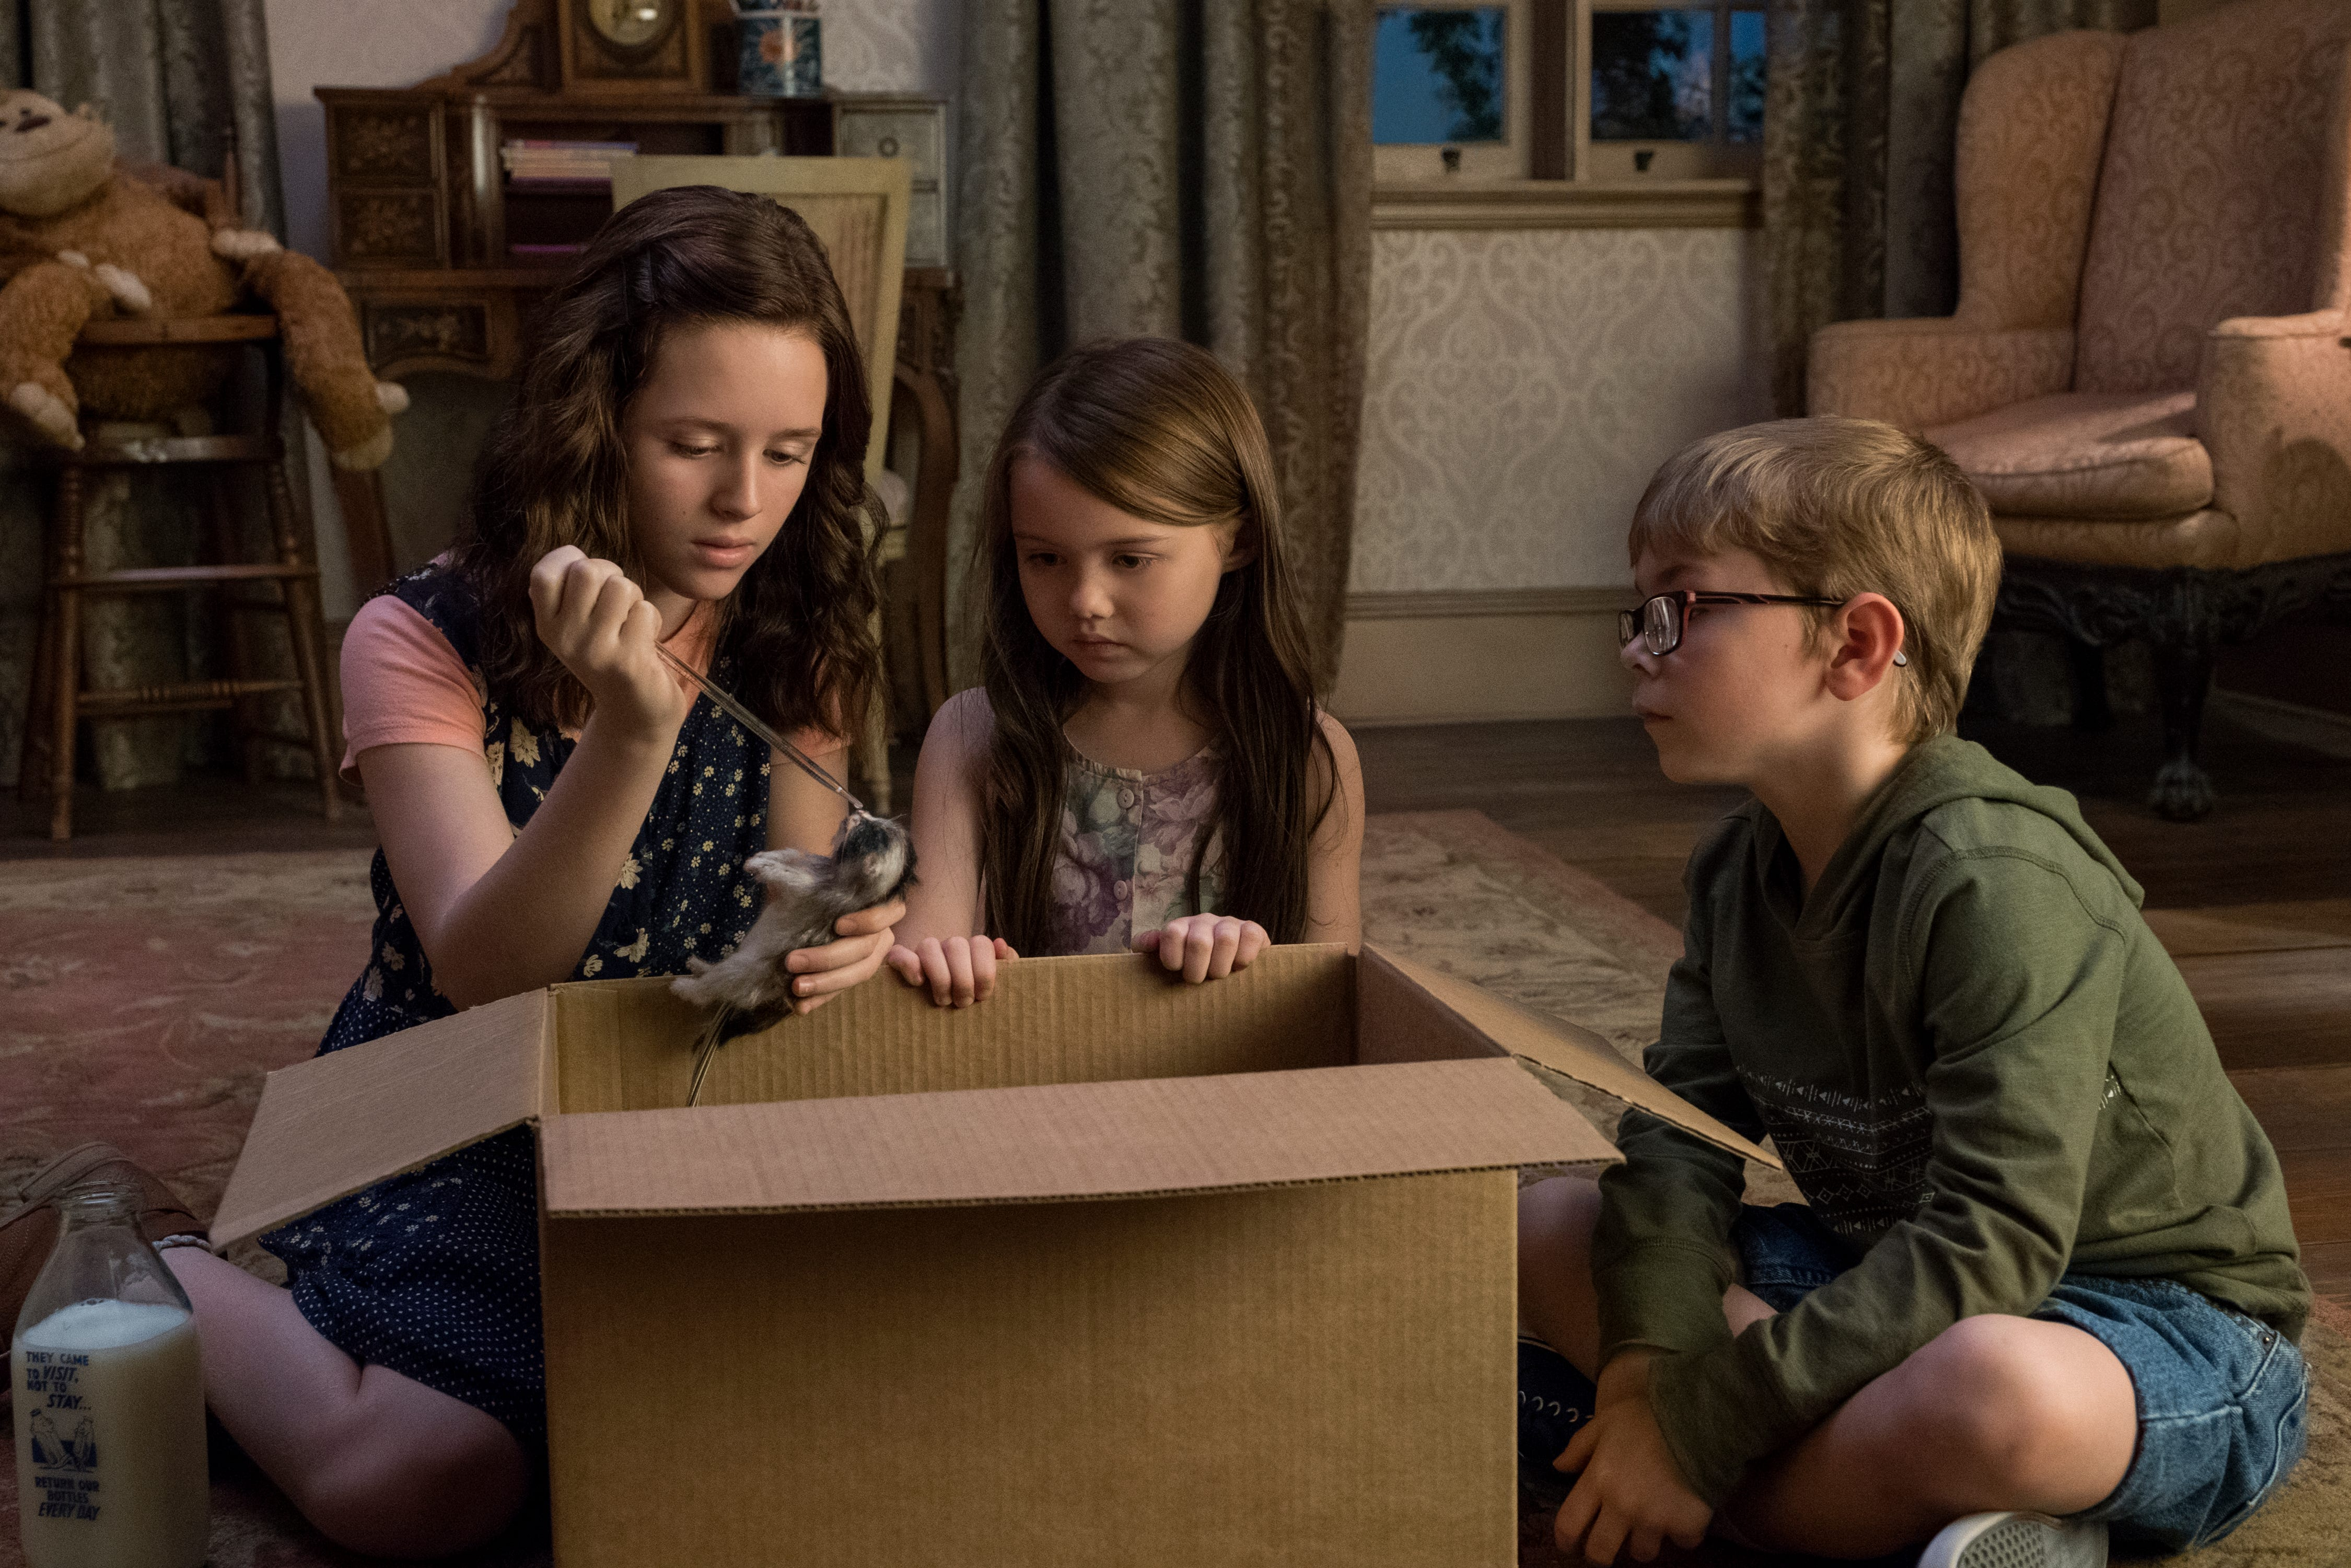 The Haunting Of Hill House Recaps Episodes 1 - 10